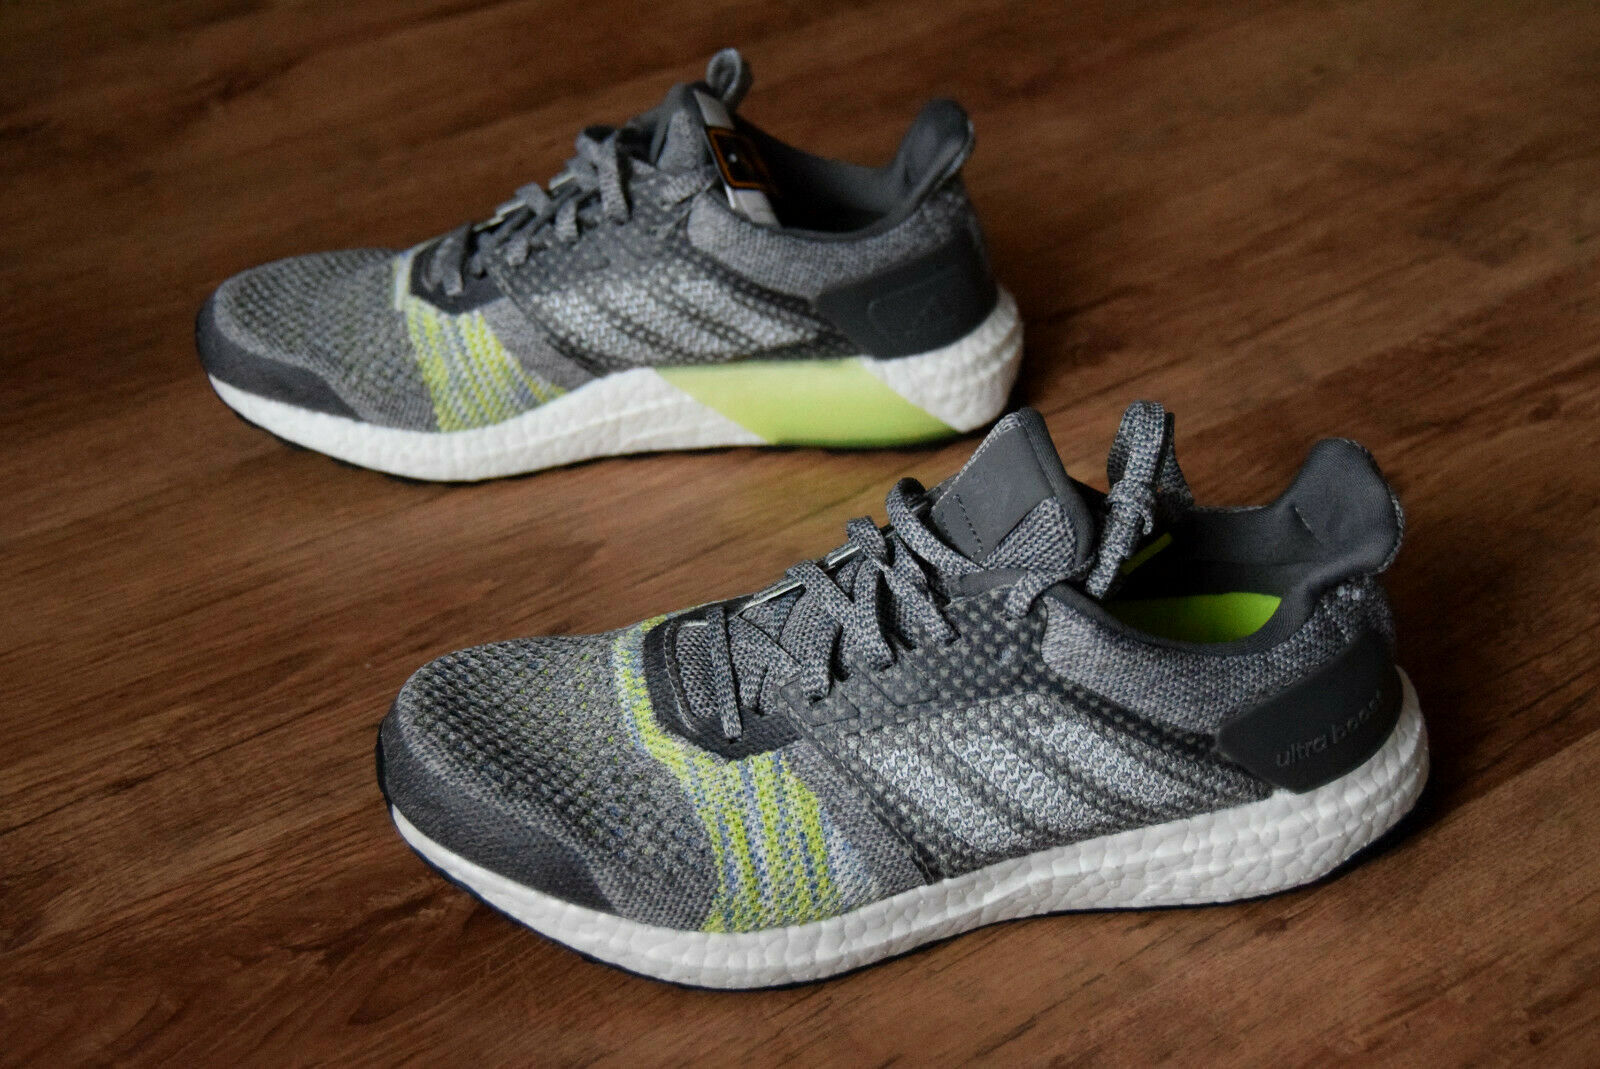 Adidas Ultra Boost st M 40,5 41 42,5 43 44 44,5 Running shoes Energy Consortium